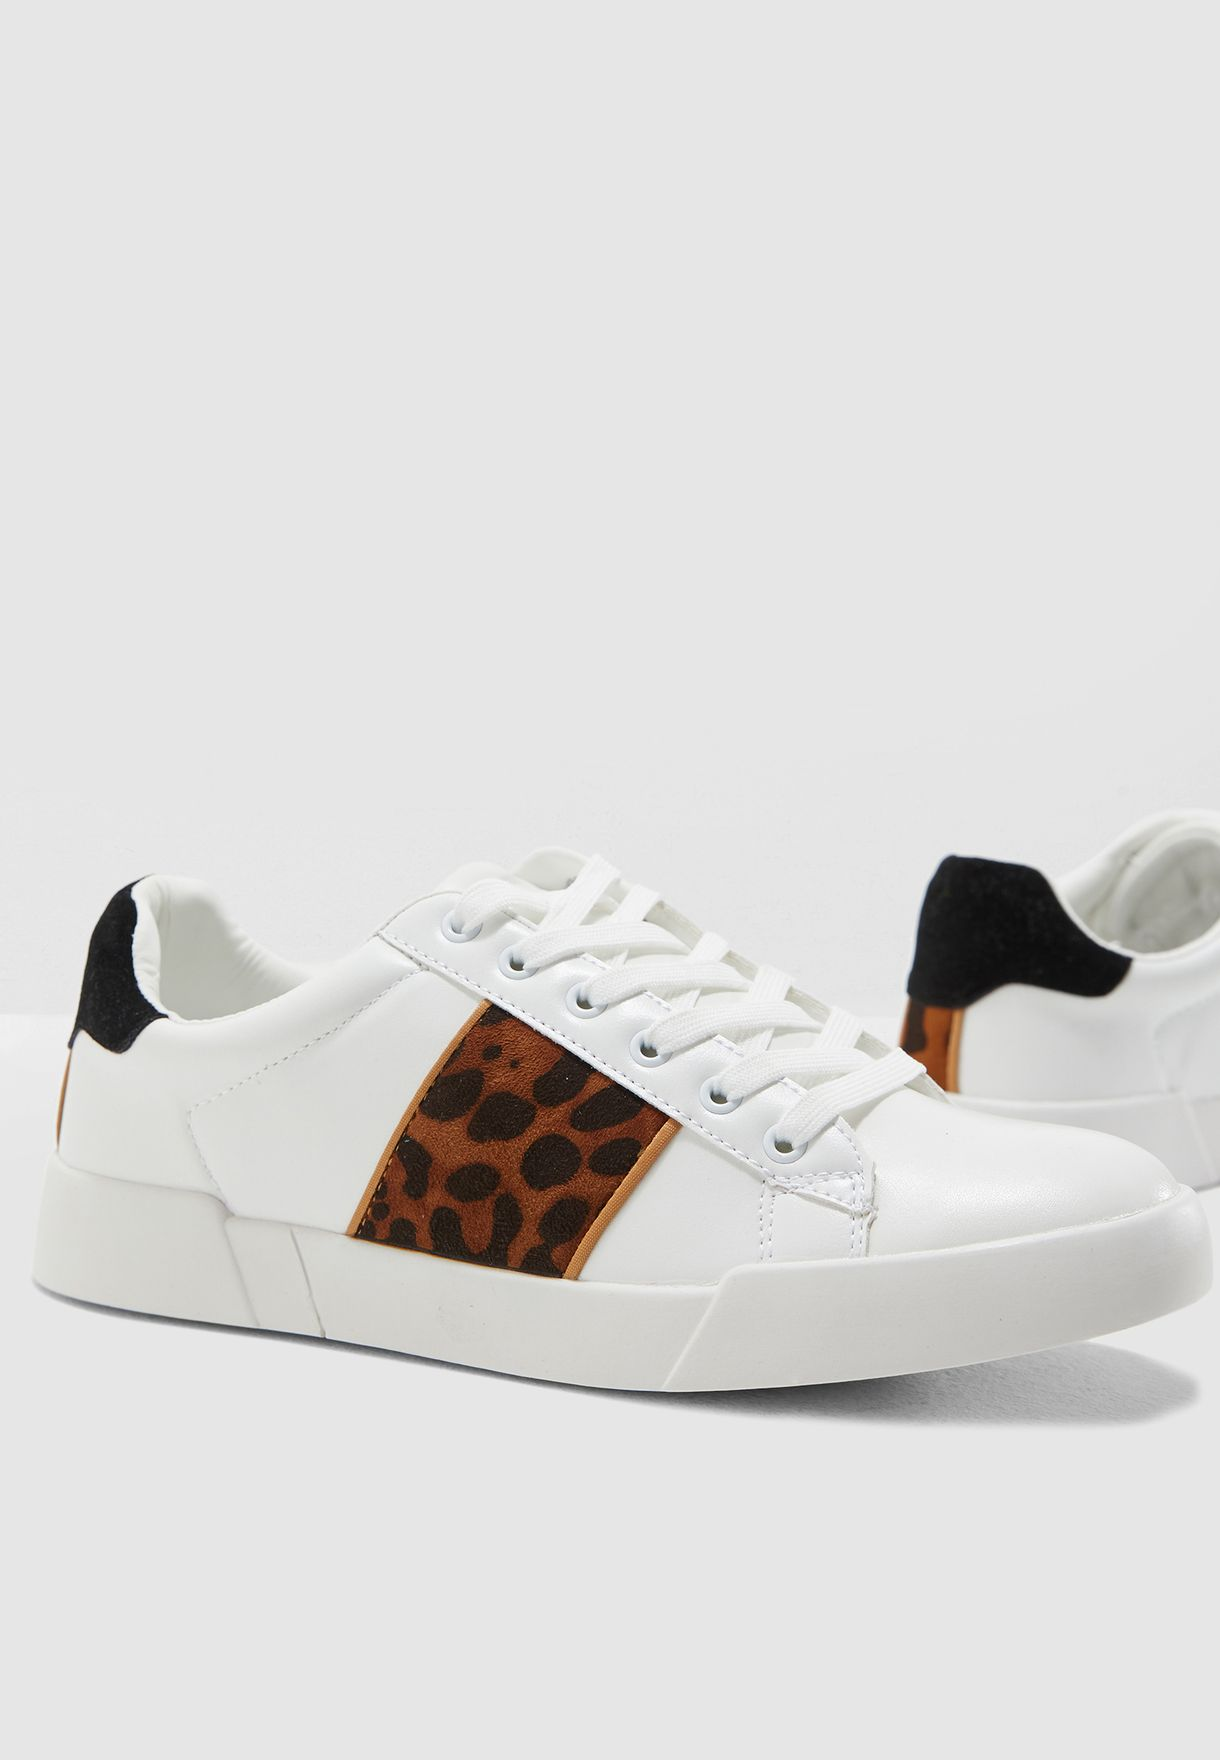 b84af0b0608 Shop Ginger white Leopard Print Detail Classic Sneakers 18203B for ...